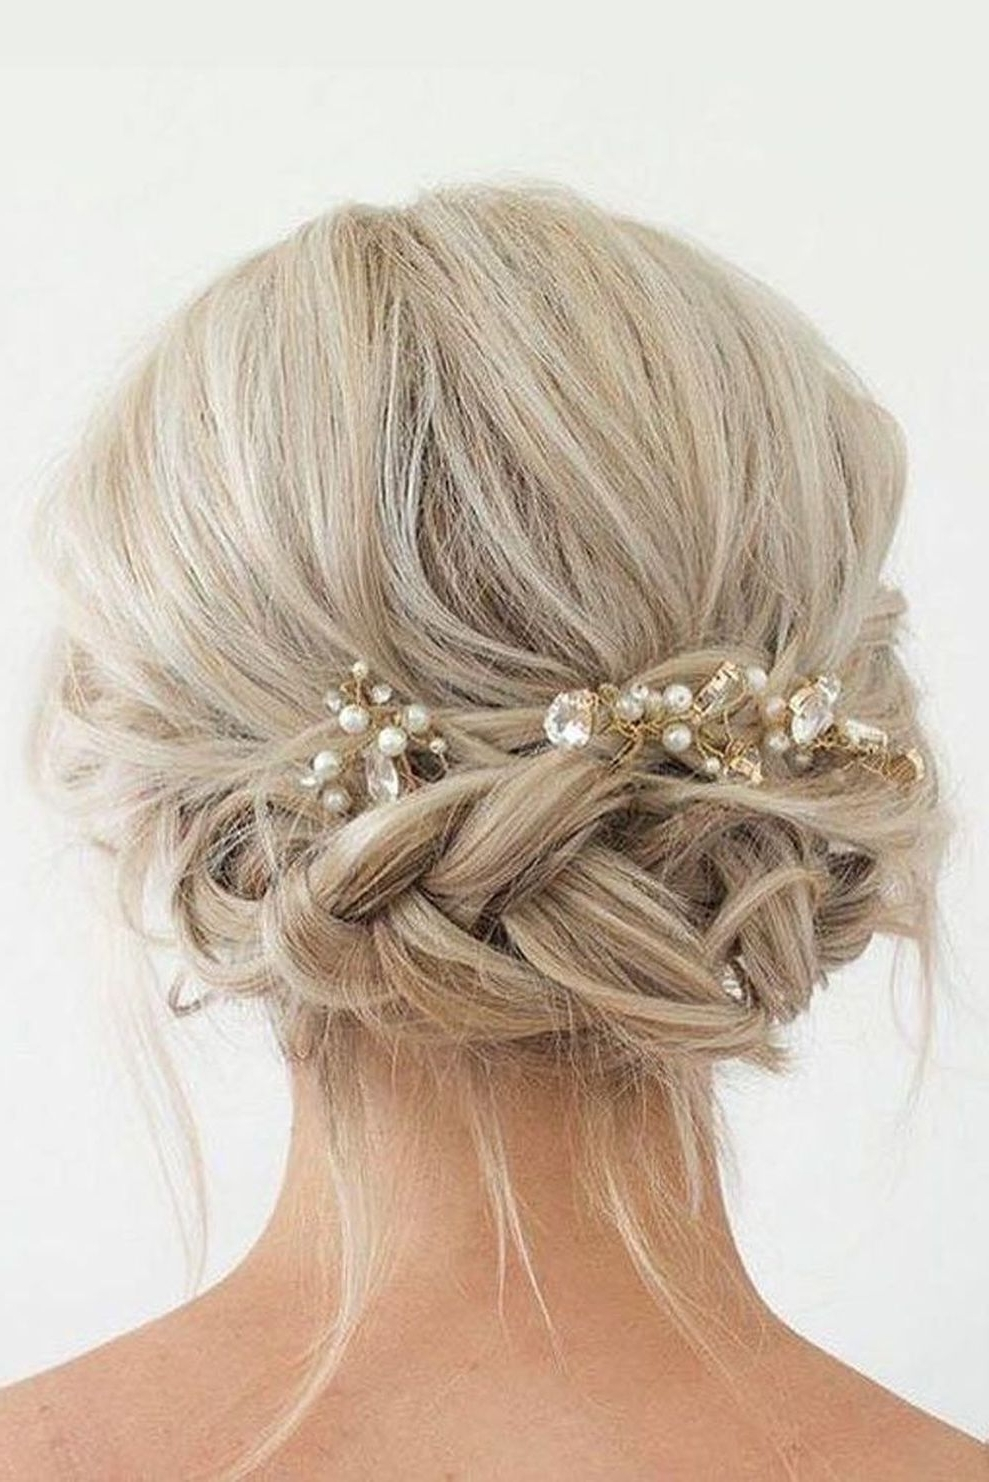 44 Beautiful Wedding Hairstyles Ideas For Medium Length Hair Regarding Best And Newest Simple Wedding Hairstyles For Medium Length Hair (View 3 of 15)